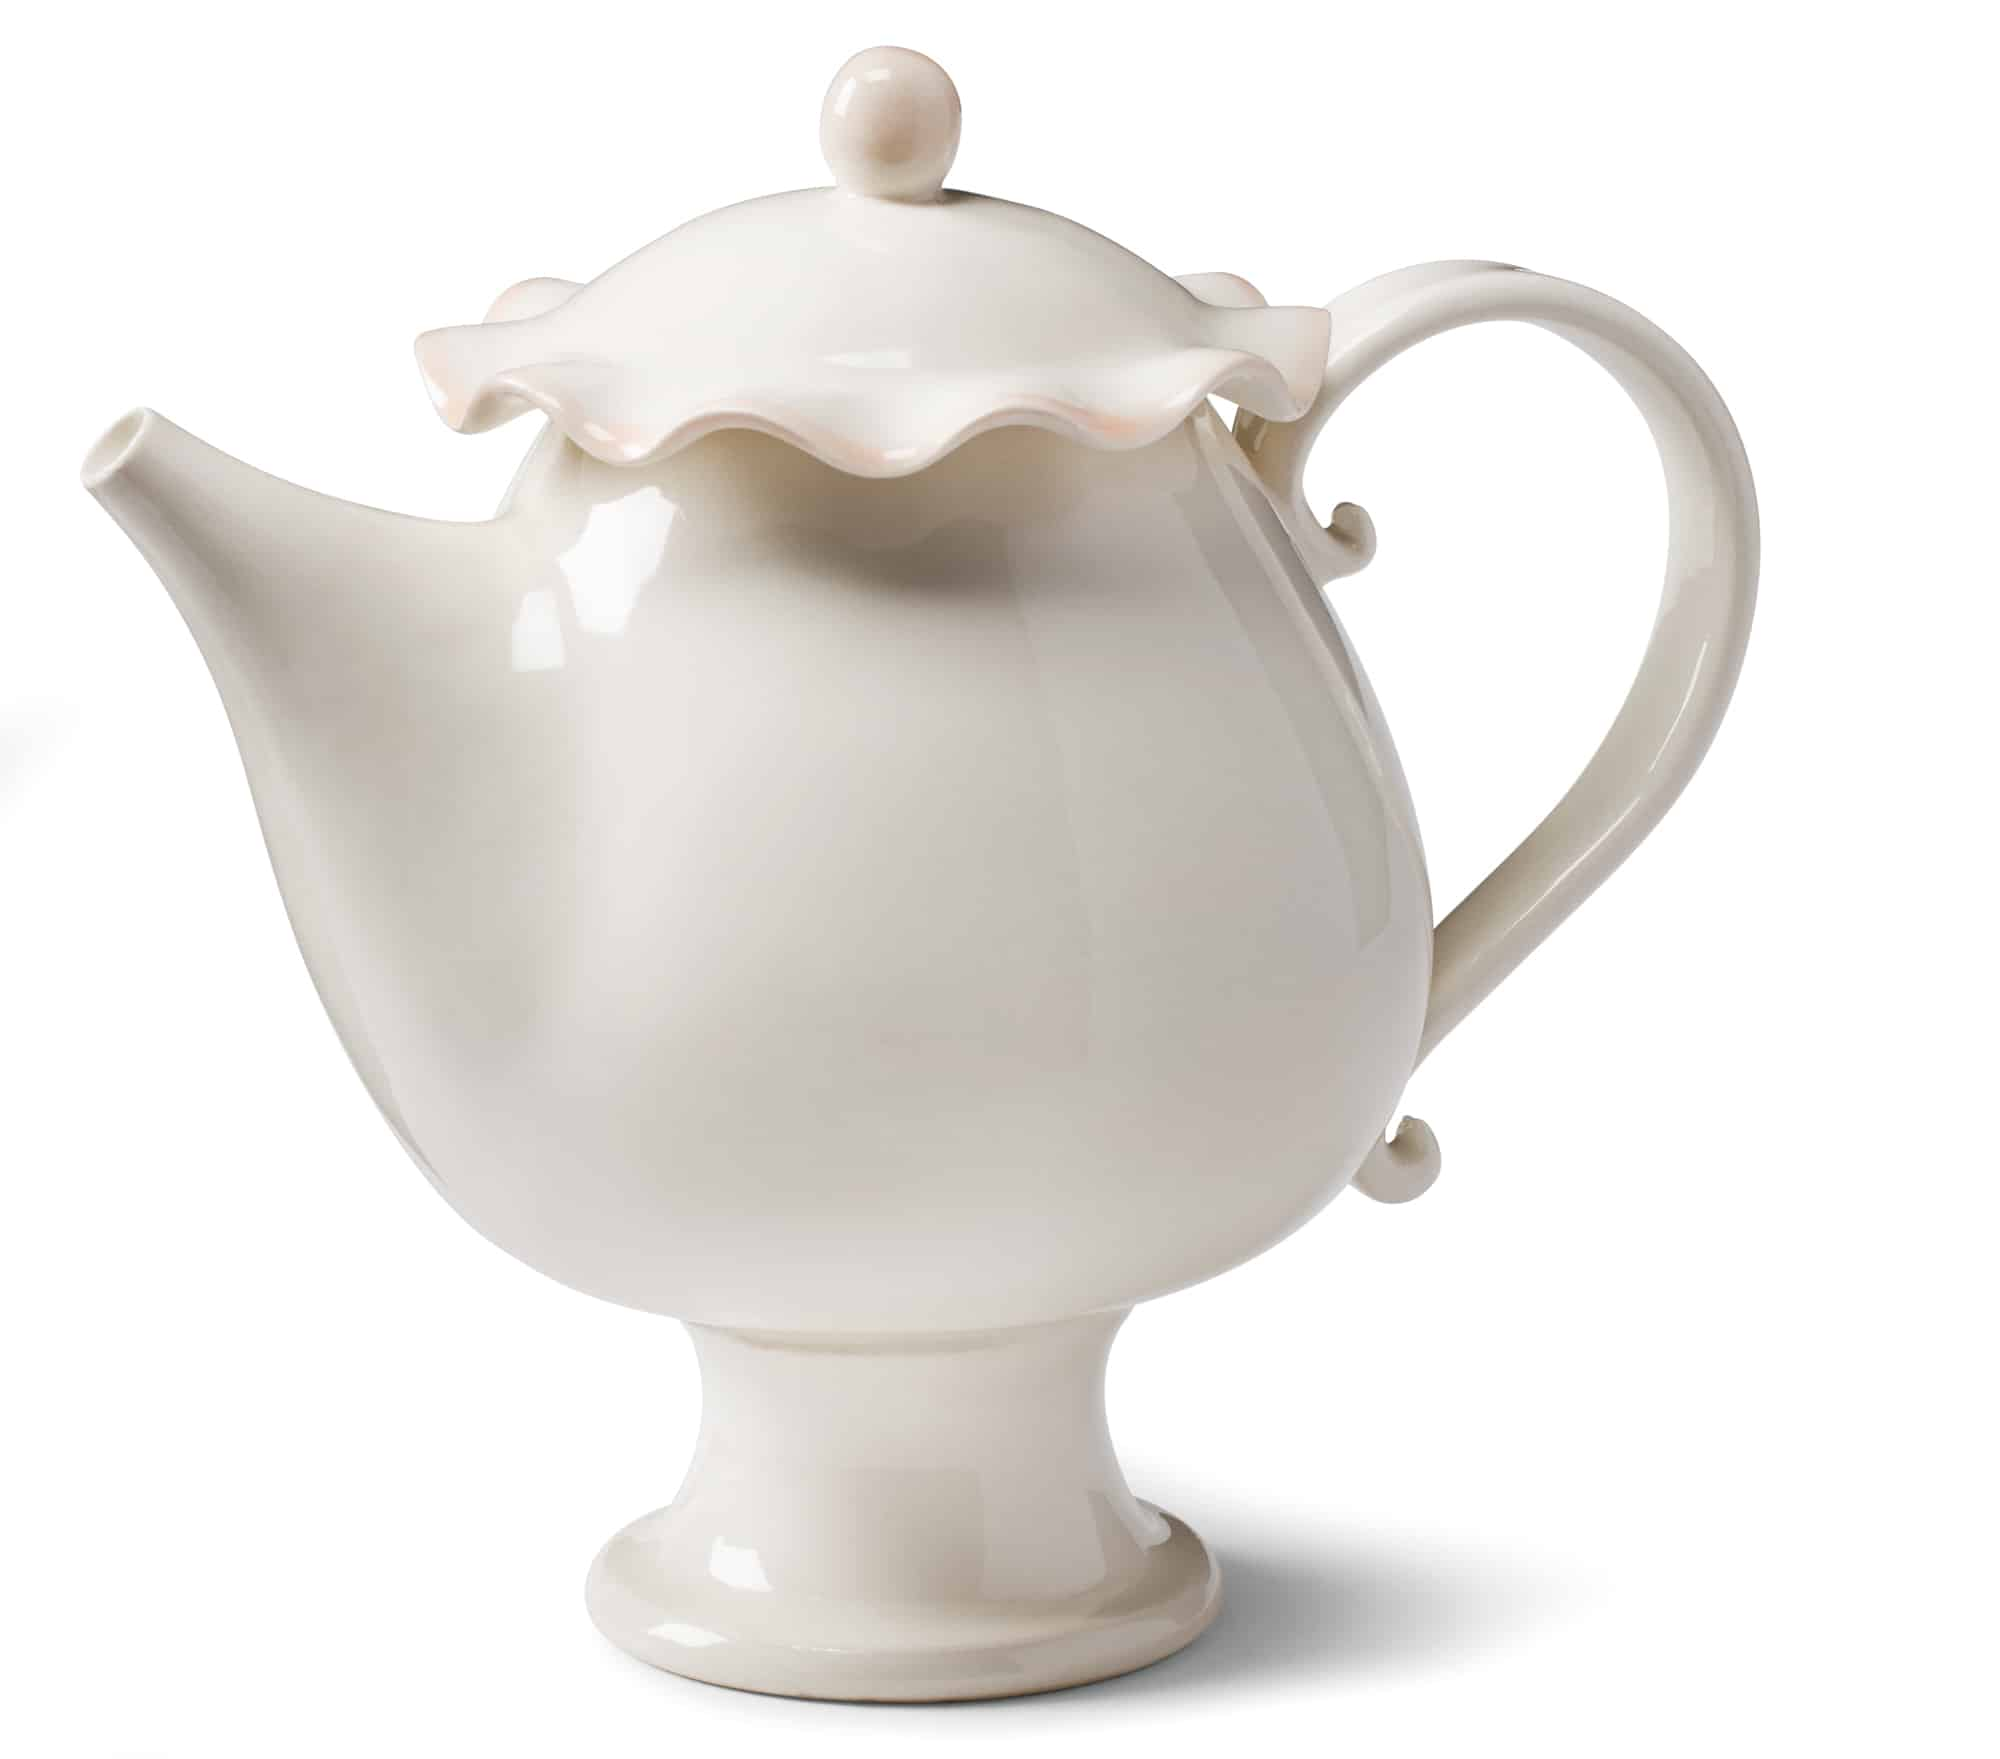 Porcelain tea pot $100 by Stéphanie Goyer-Morin